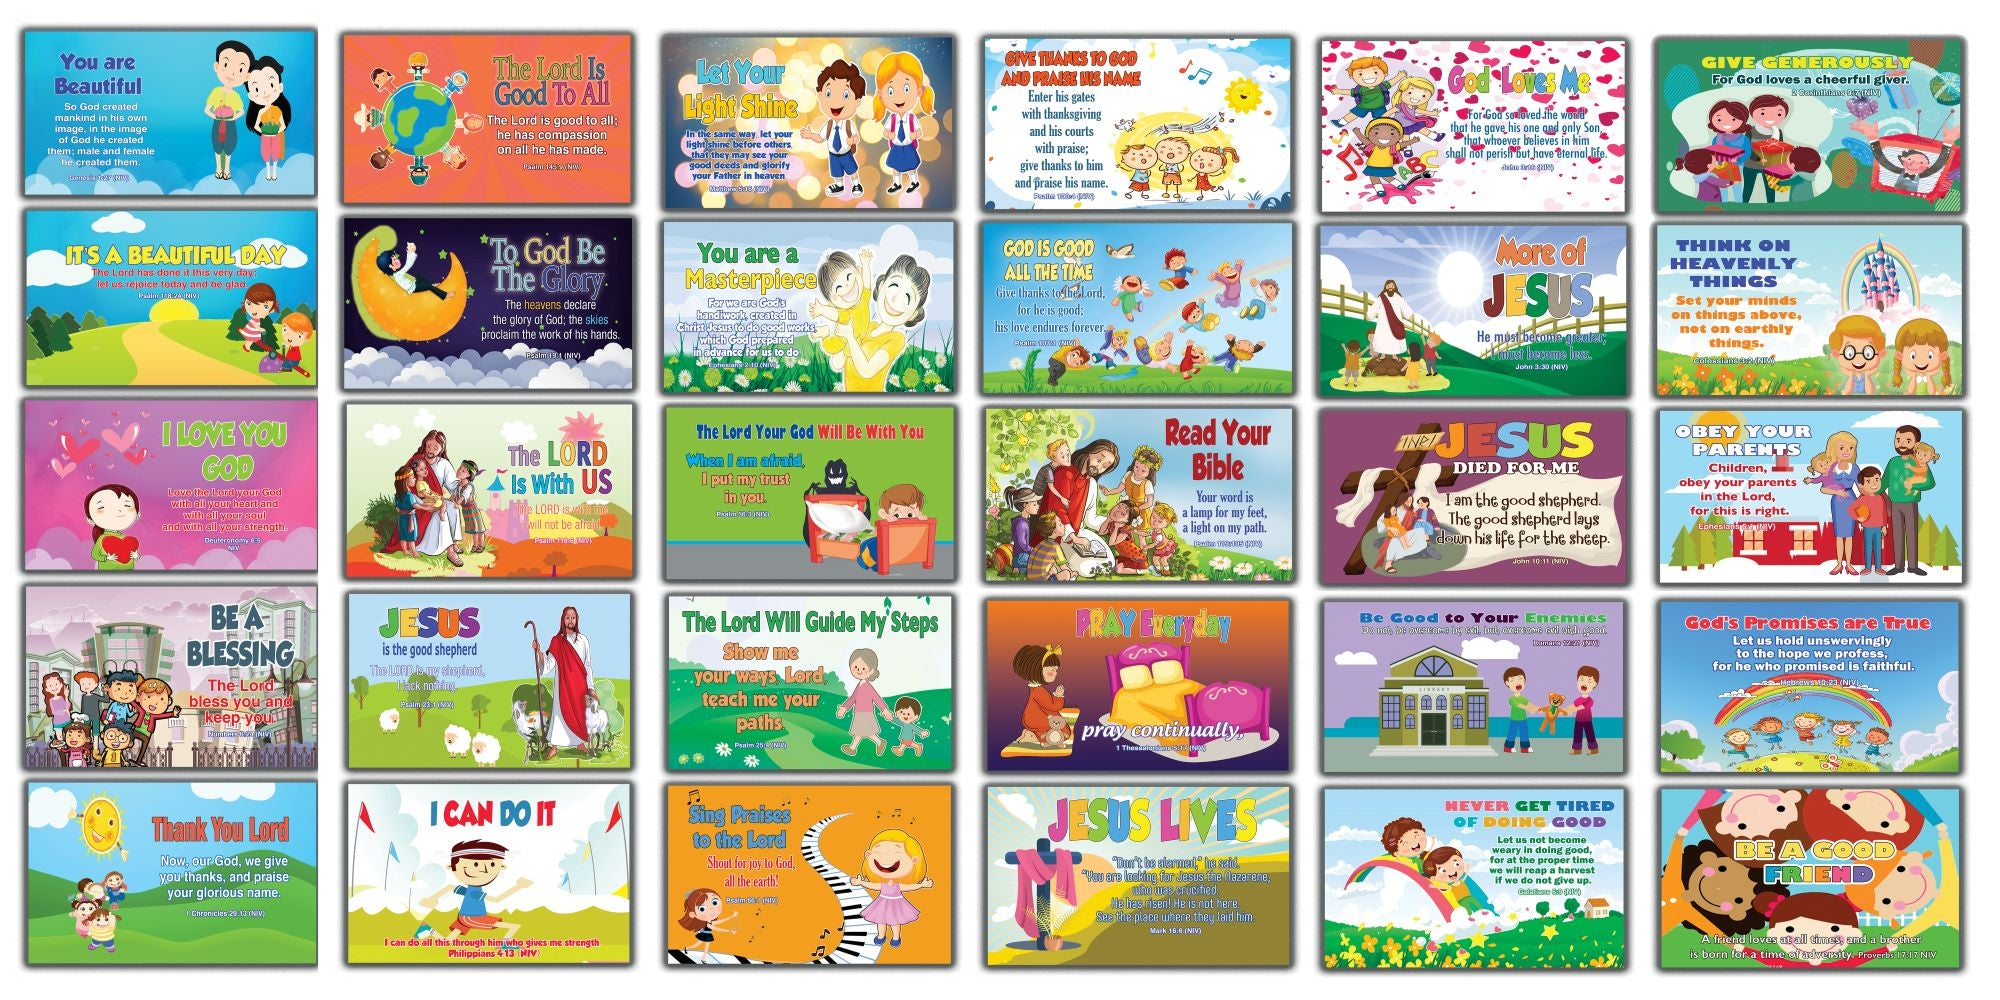 Inspirational Bible Verses Flash Cards NIV Version (30 cards x 4 set ) - Perfect Giveaways for Sunday Schools and Children?s Birthday Parties